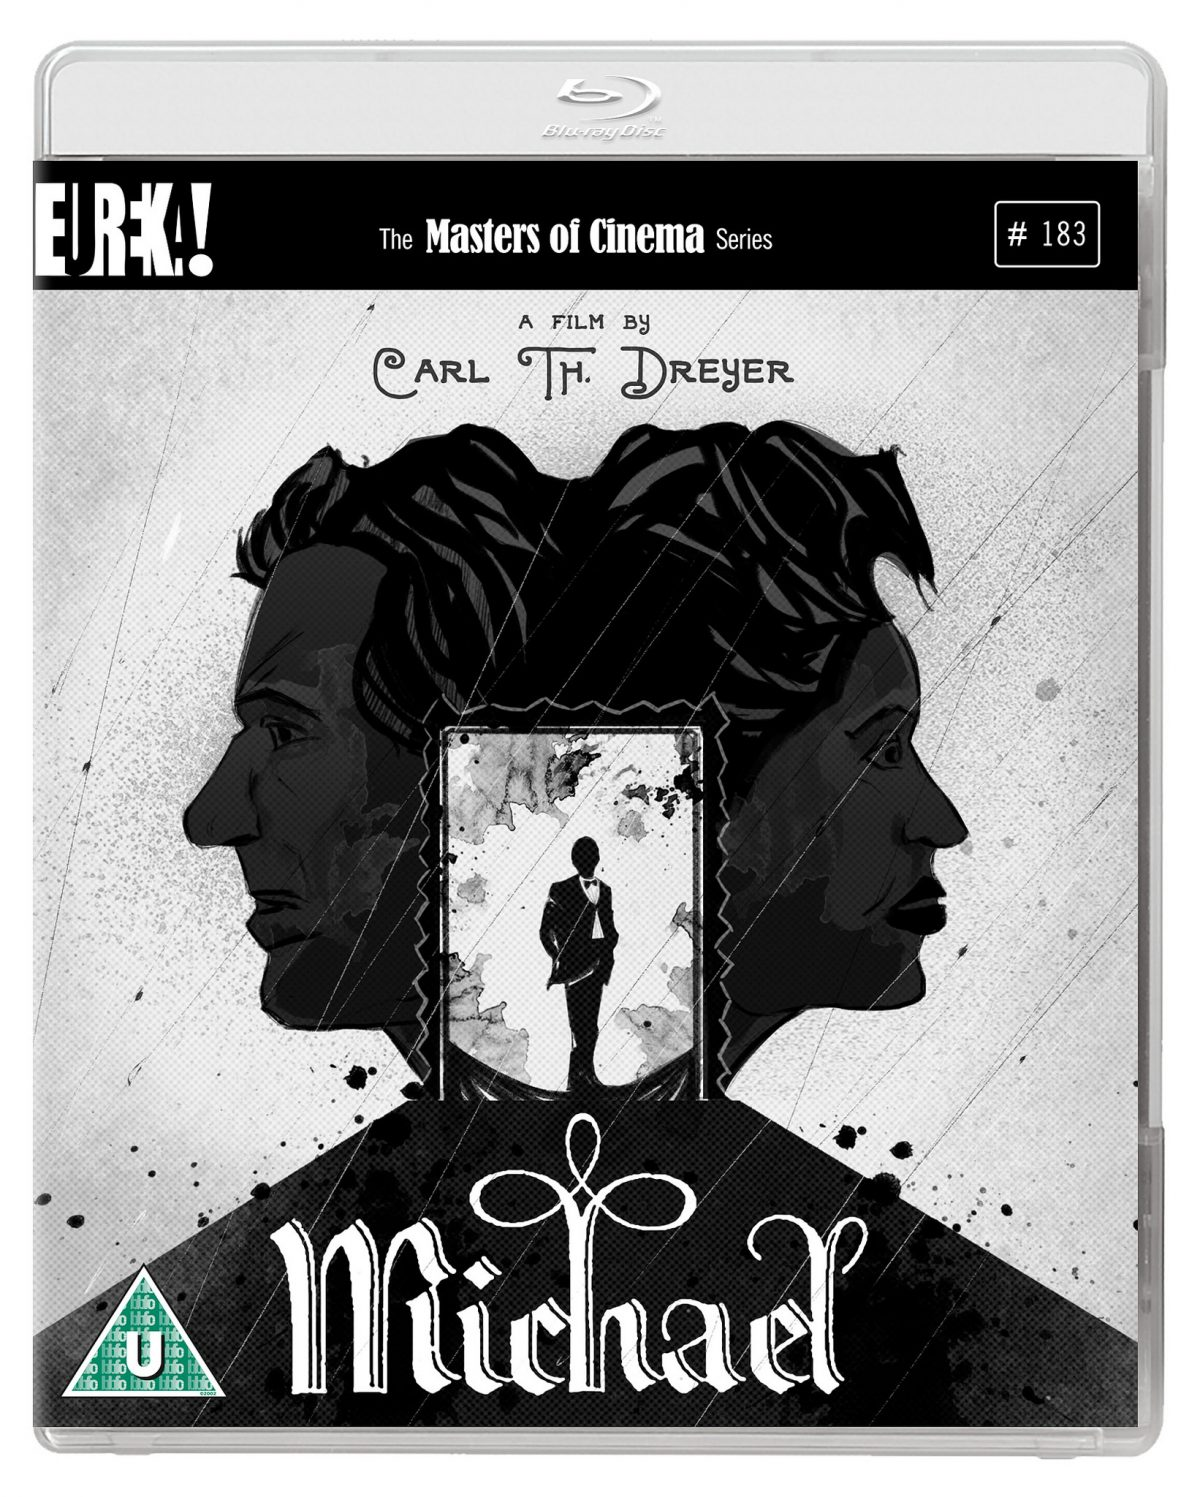 Blazing Minds and Eureka Entertainment have got together to bring you the chance to win a Blu-ray of their new release of a new 2K restoration of Carl Th. Dreyer's MICHAEL, a compelling piece of silent cinema from one of the all-time great directors, as a WORLD EXCLUSIVE on Blu-ray from 12 February 2018.